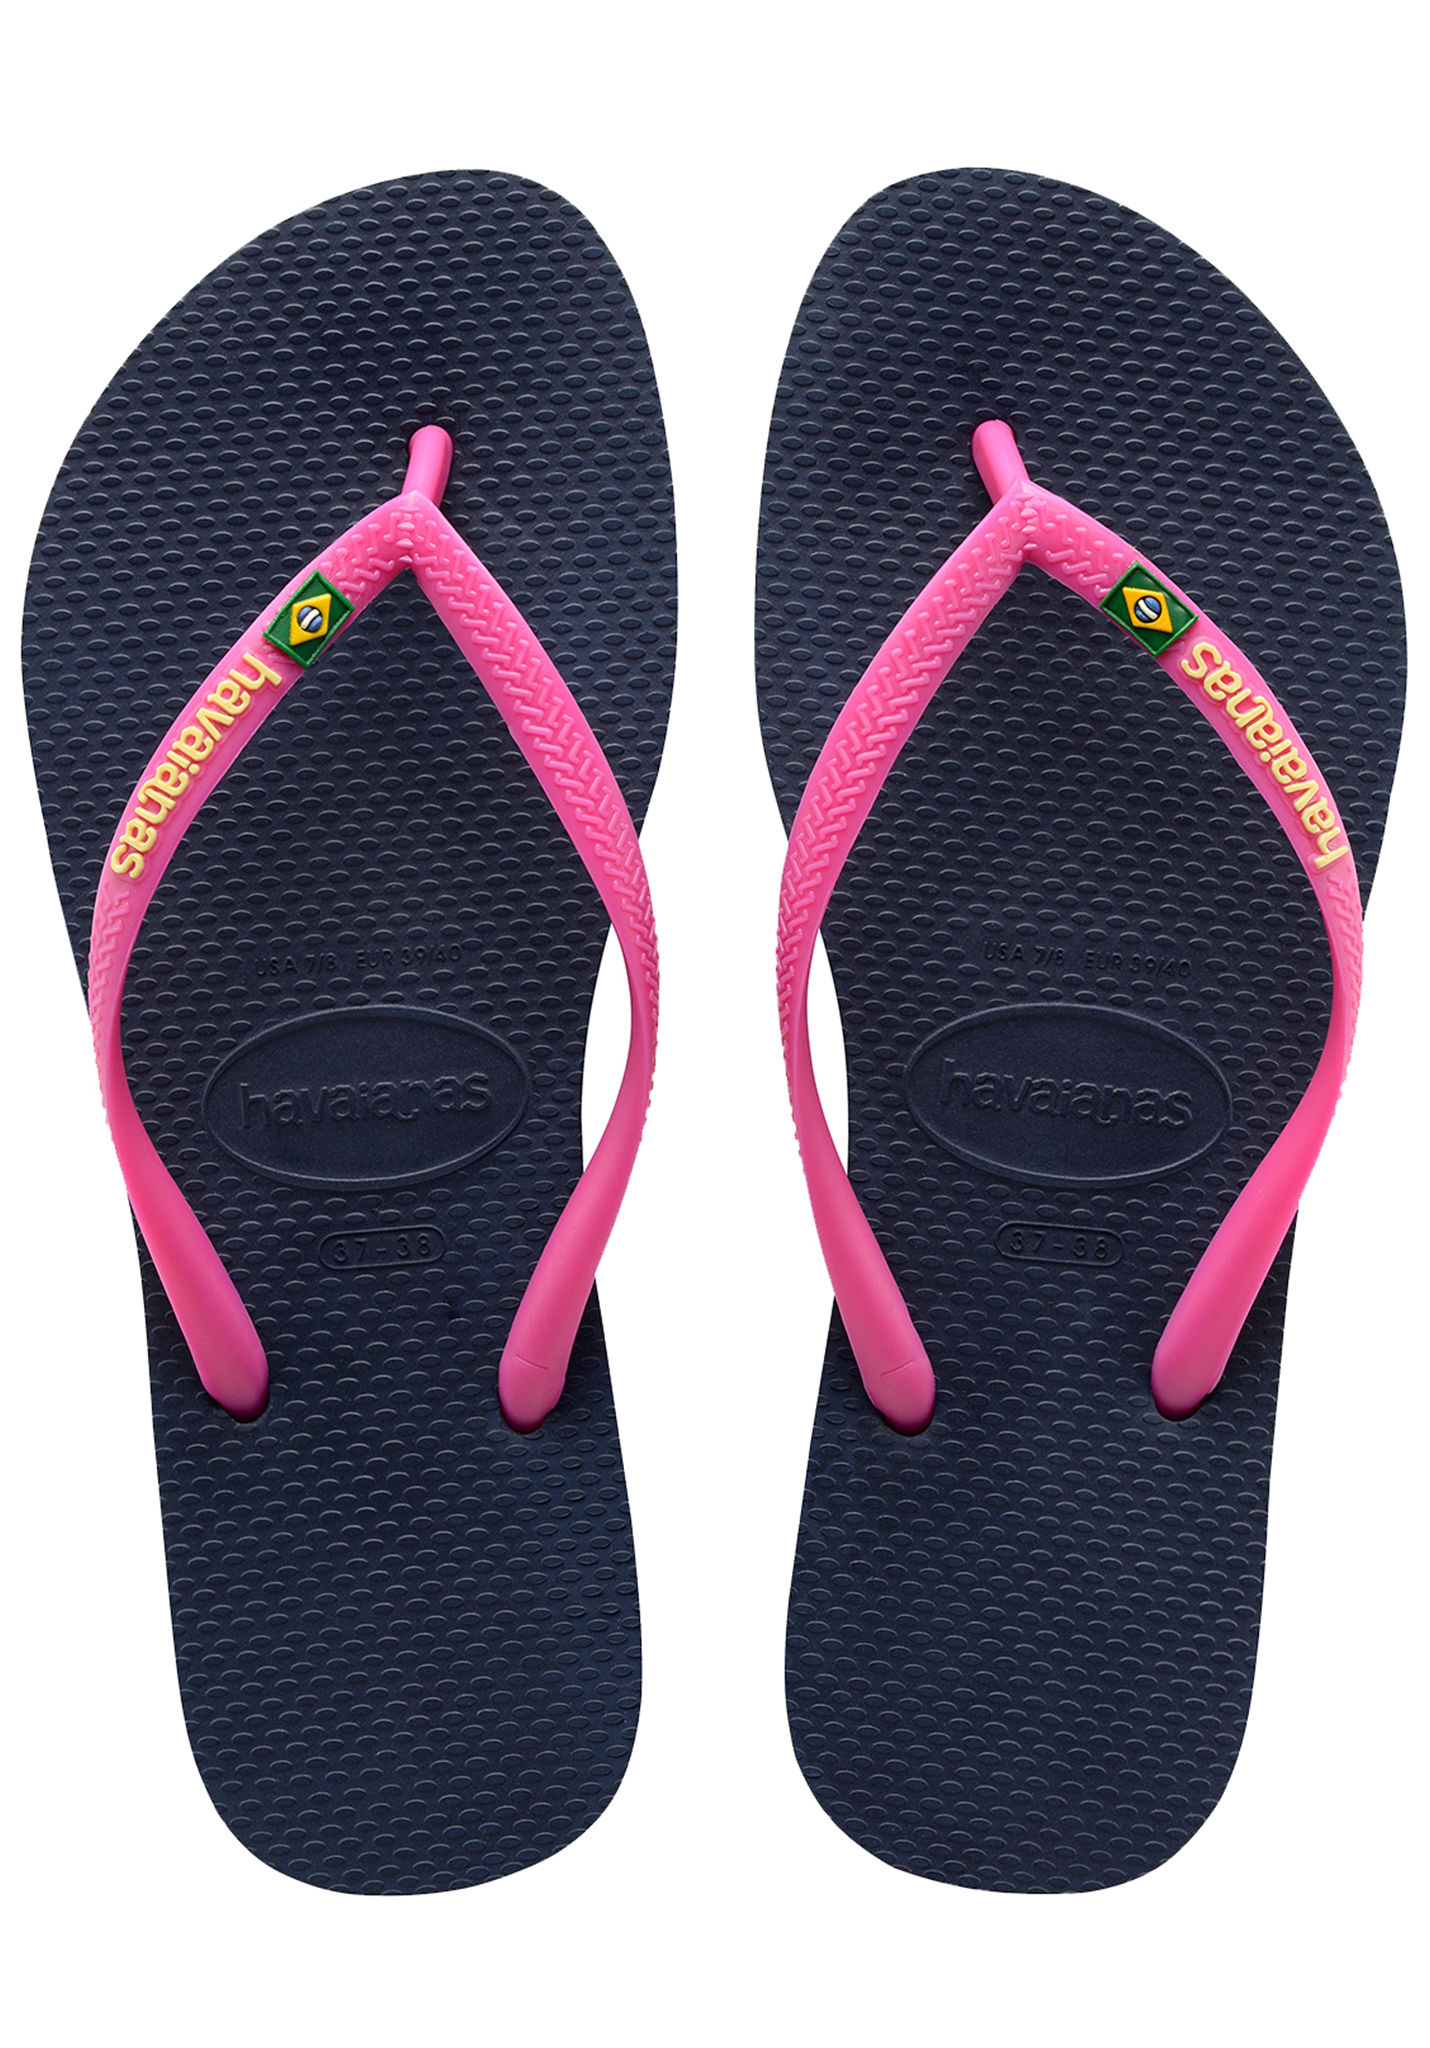 04a1c060a5453 HAVAIANAS Slim Brasil Logo - Sandals for Women - Blue - Planet Sports